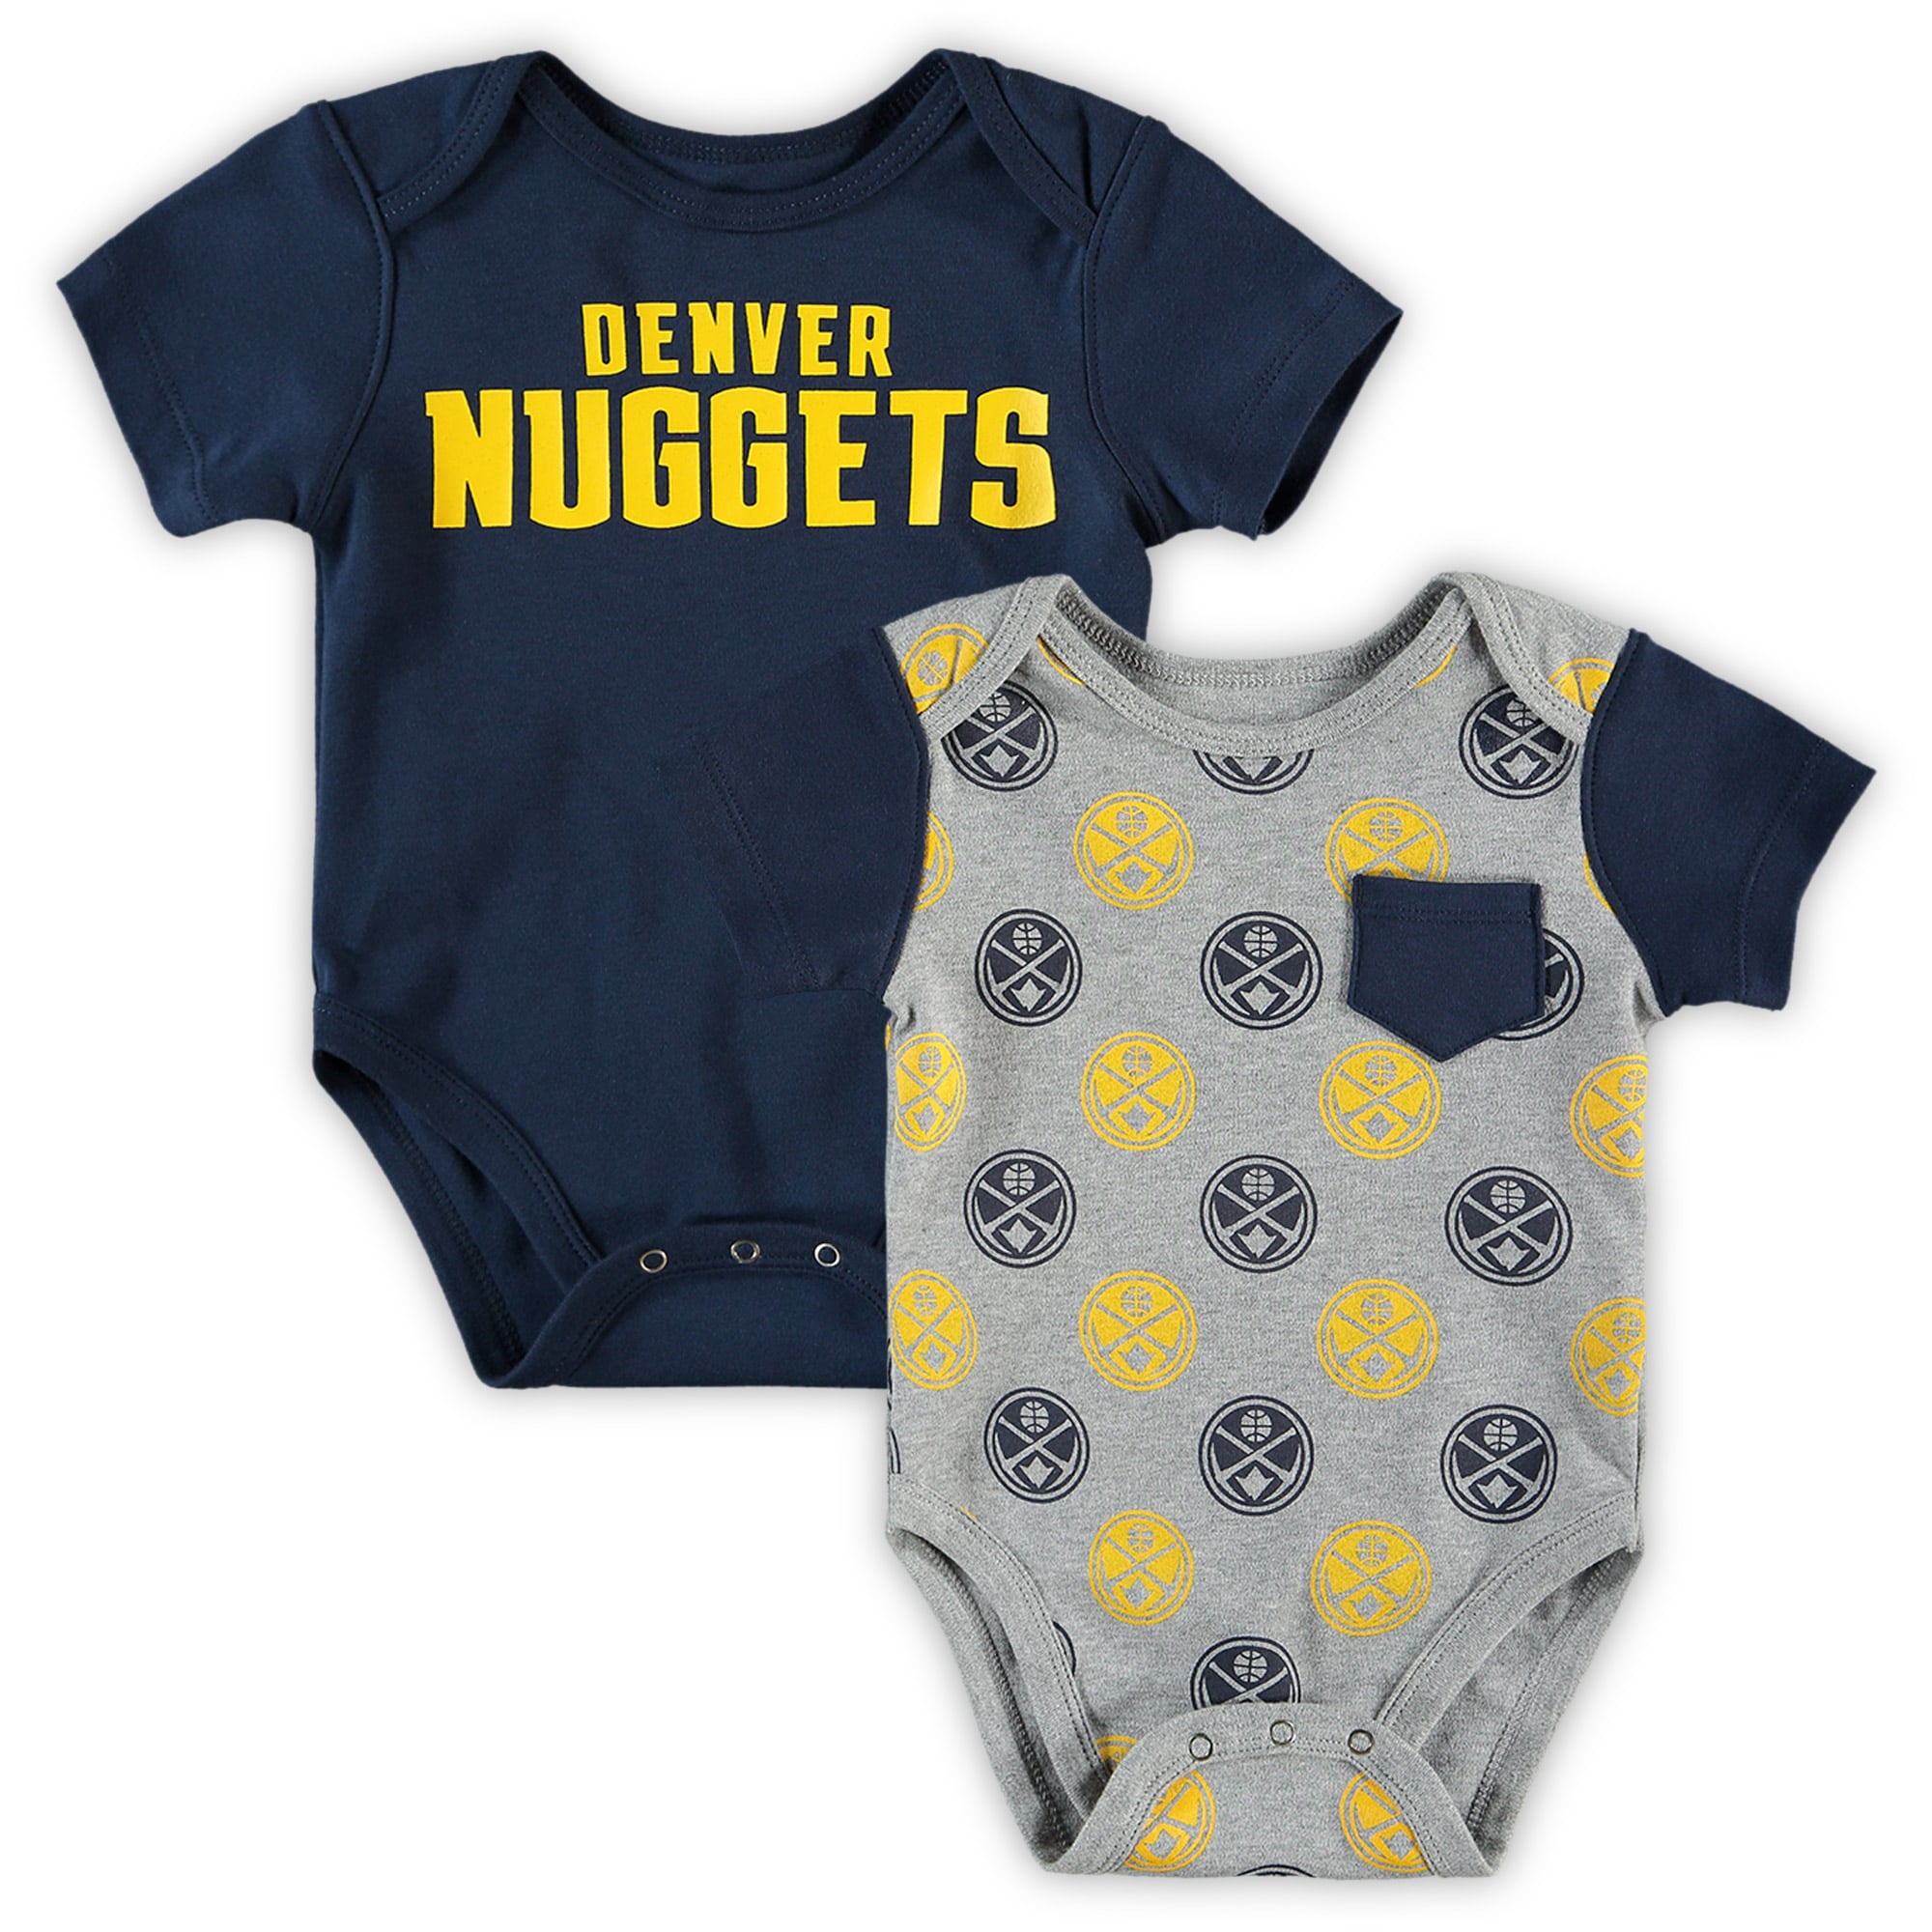 Denver Nuggets Infant Little Baller 2-Pack Bodysuit Set - Navy/Heathered Gray